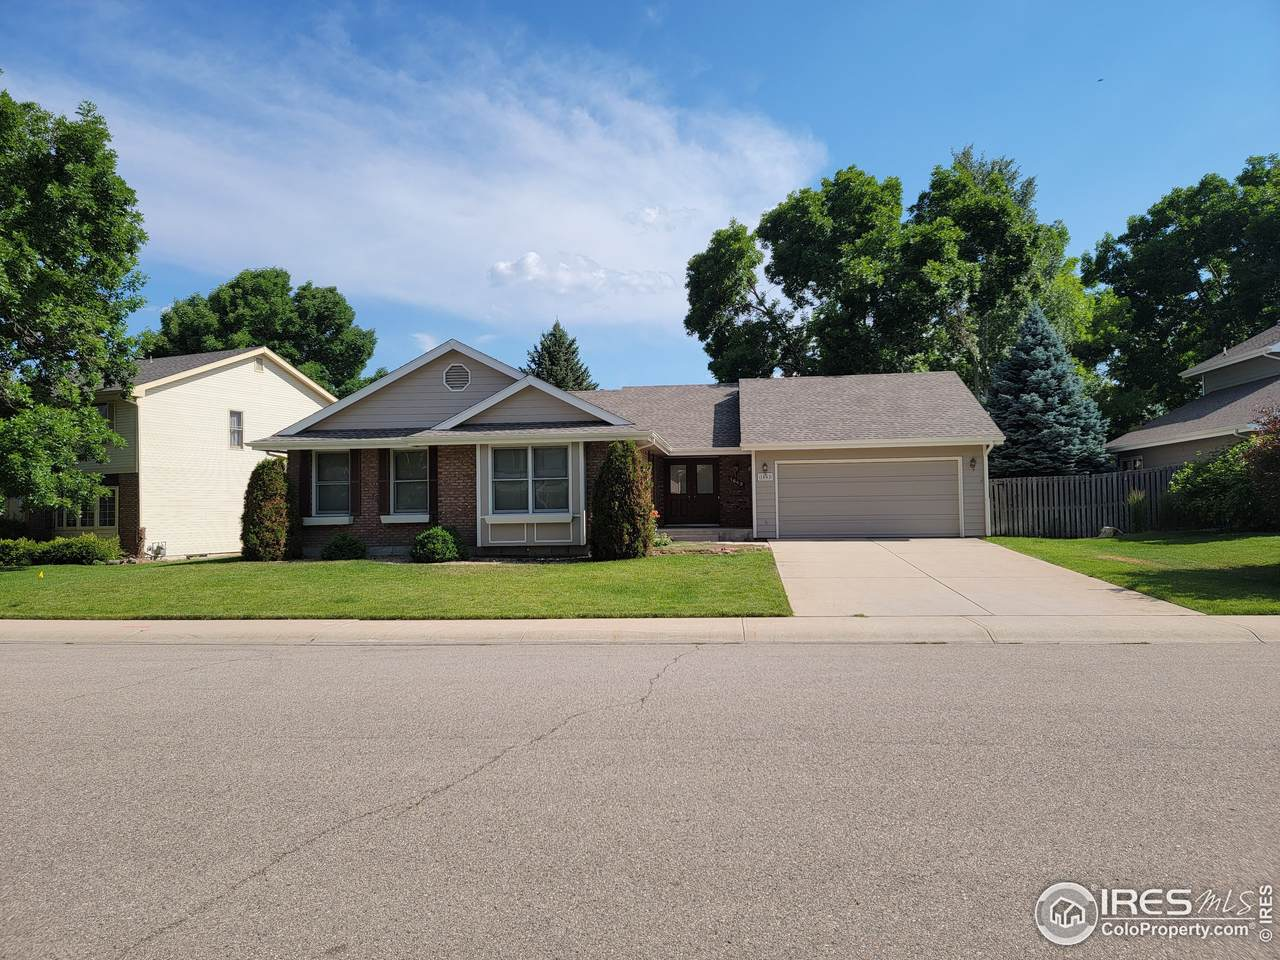 1643 Collindale Dr - Photo 1